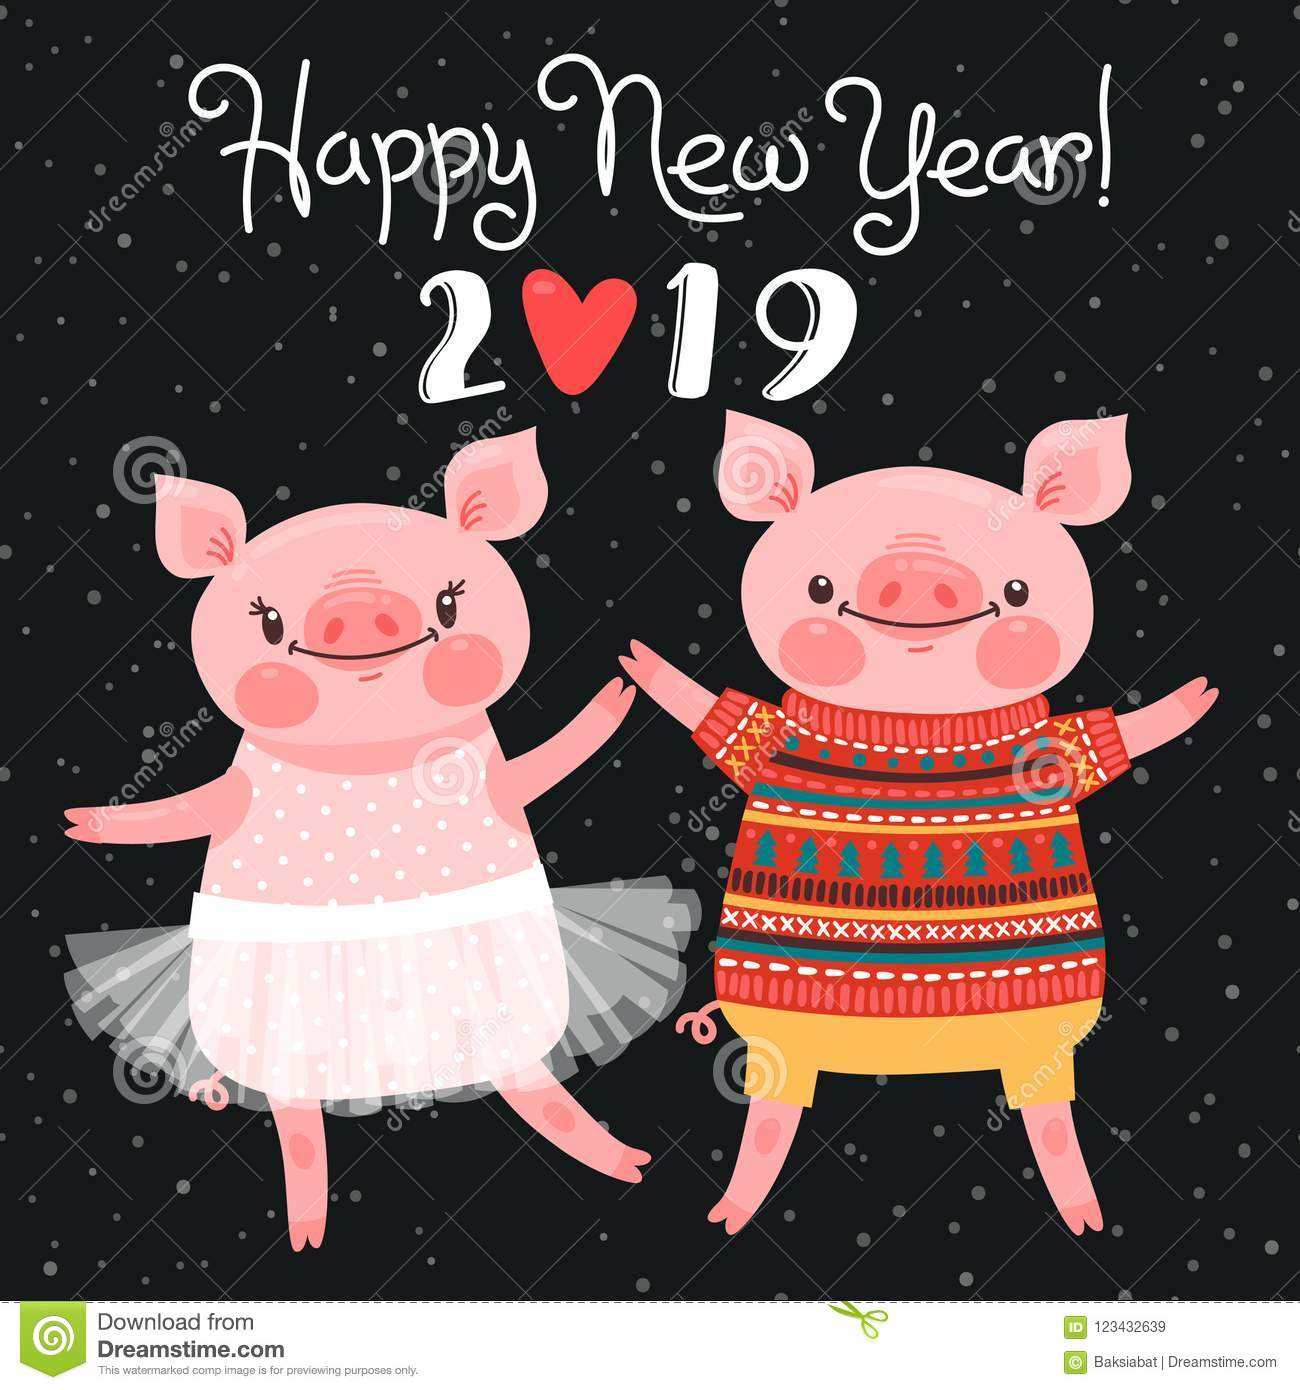 happy 2019 new year card couple of funny piglets congratulate on the holiday pig